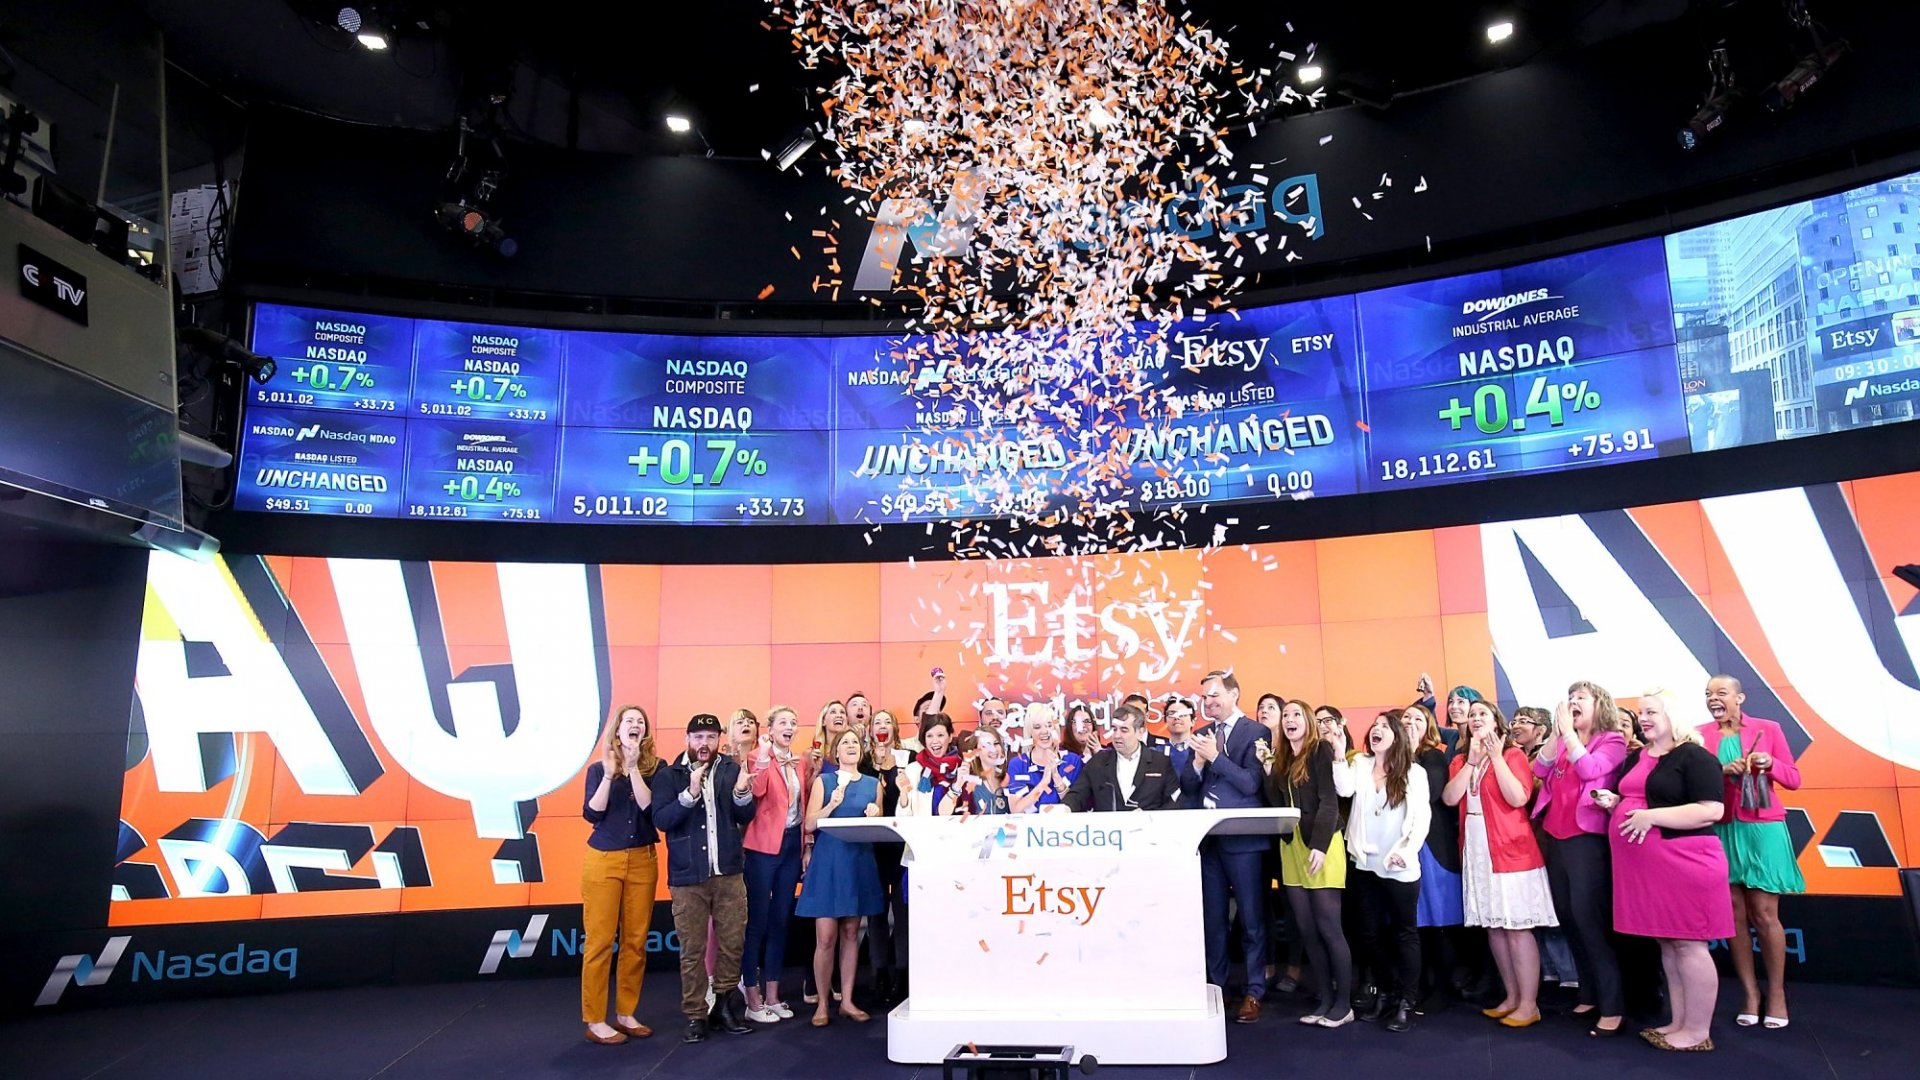 Etsy Suffers Loss in First Quarter as Public Company